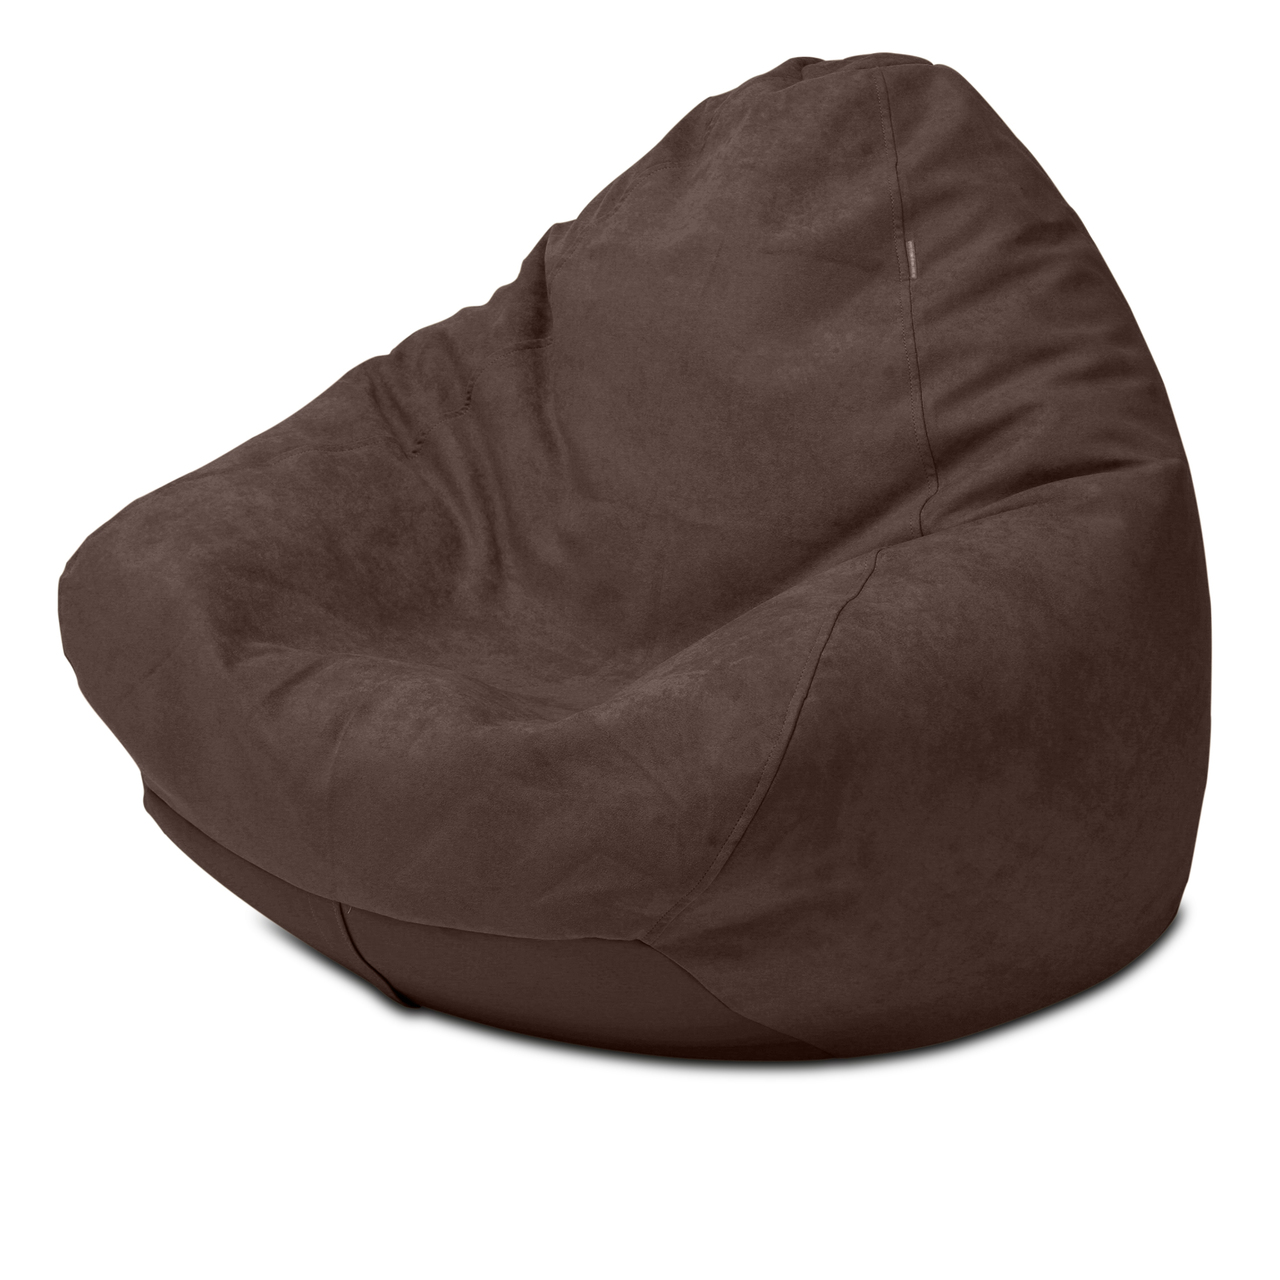 Warwick Macrosuede Queen Size Bean Bag in raisin